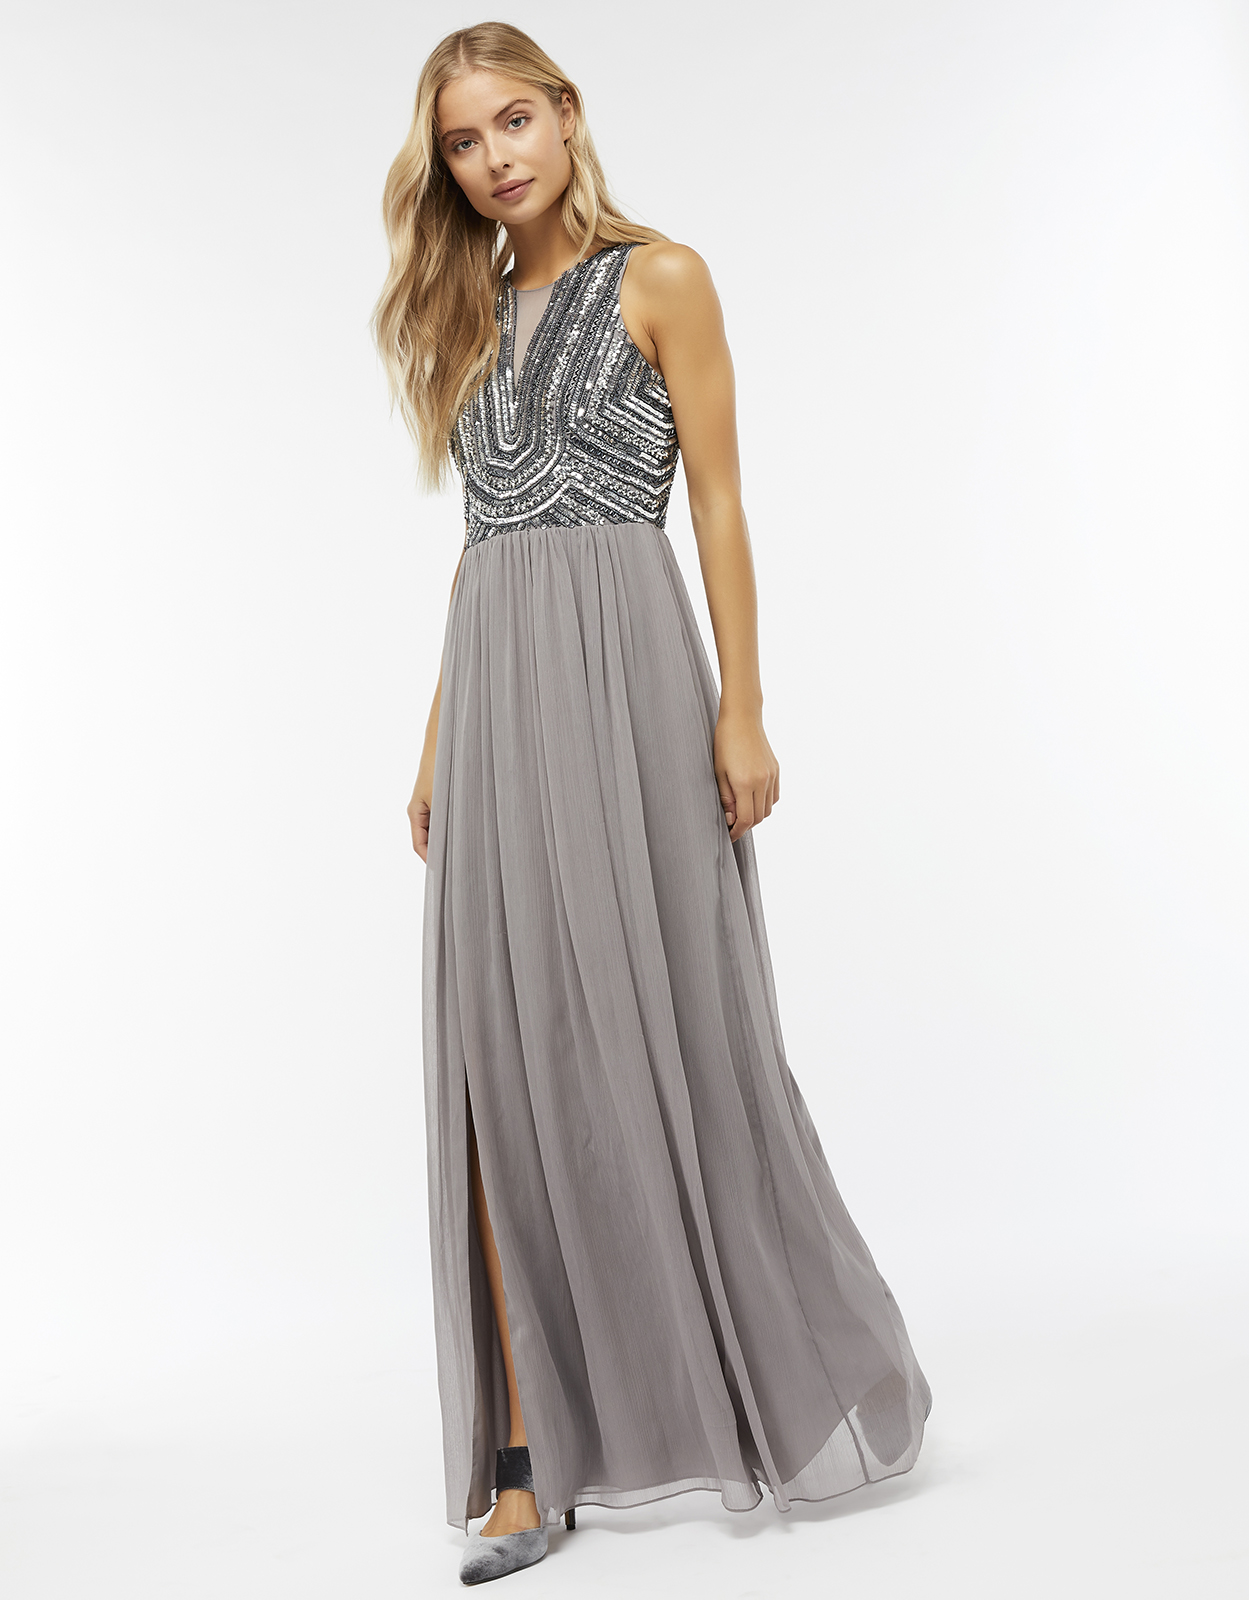 Monsoon Celeste Embellished Maxi Dress